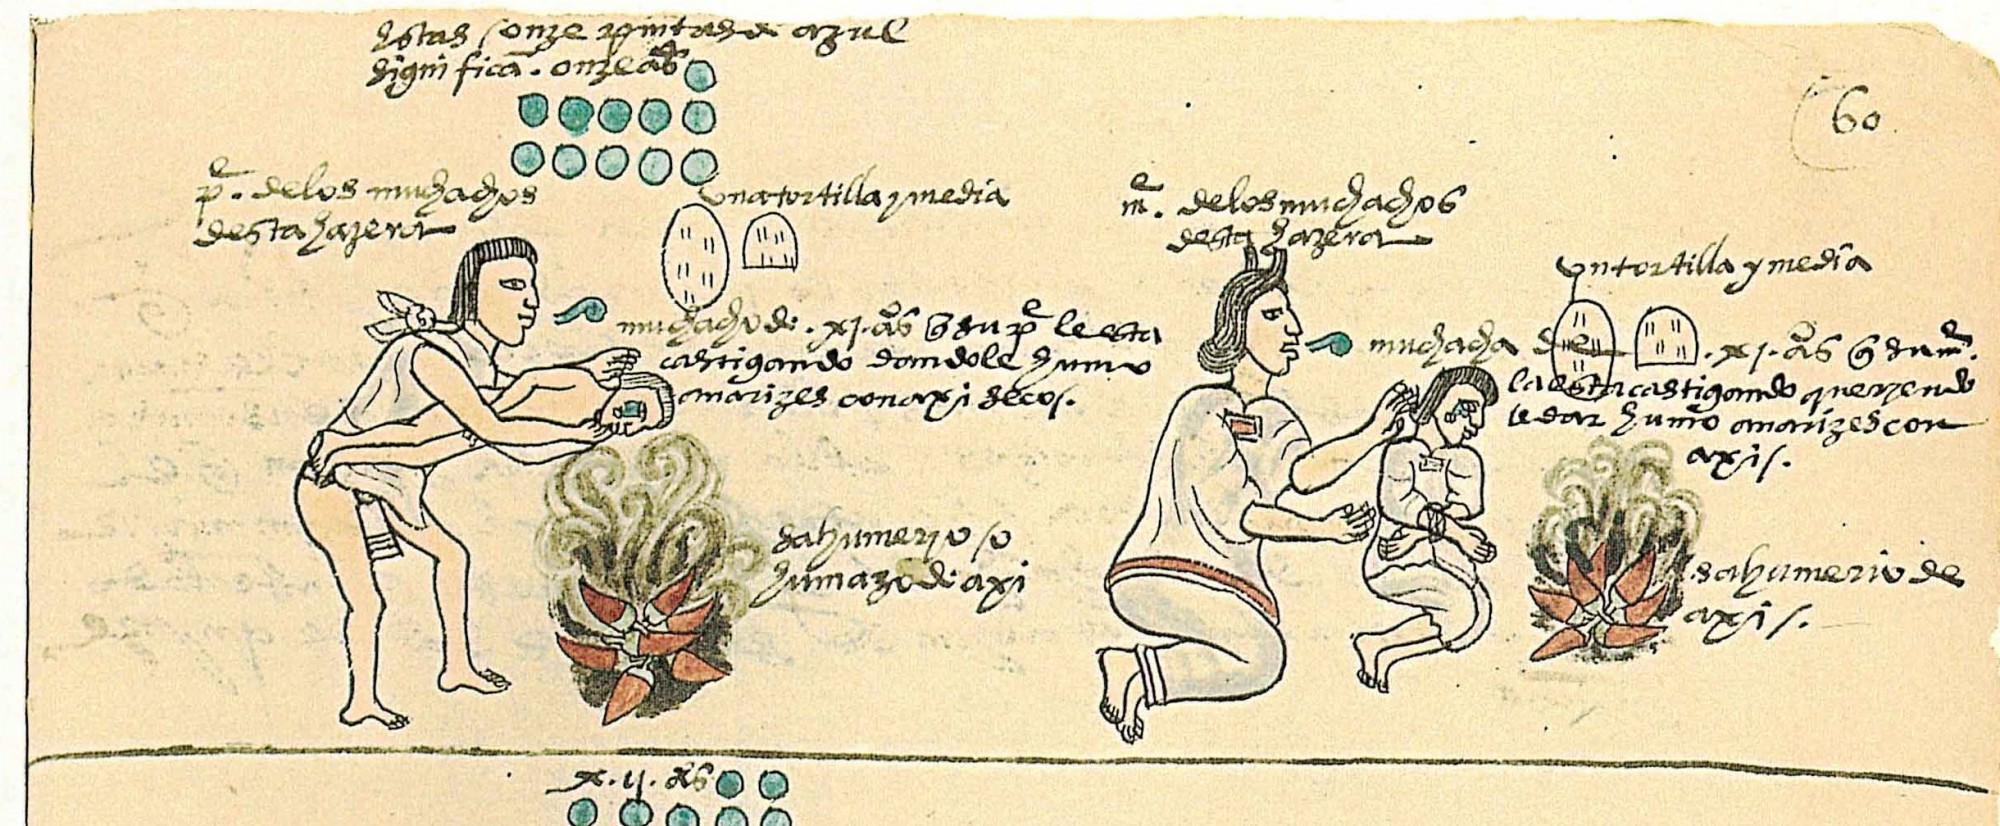 Codex Mendocino - zdroj: http://upload.wikimedia.org/wikipedia/commons/6/60/Codex_Mendoza_folio_60r.jpg